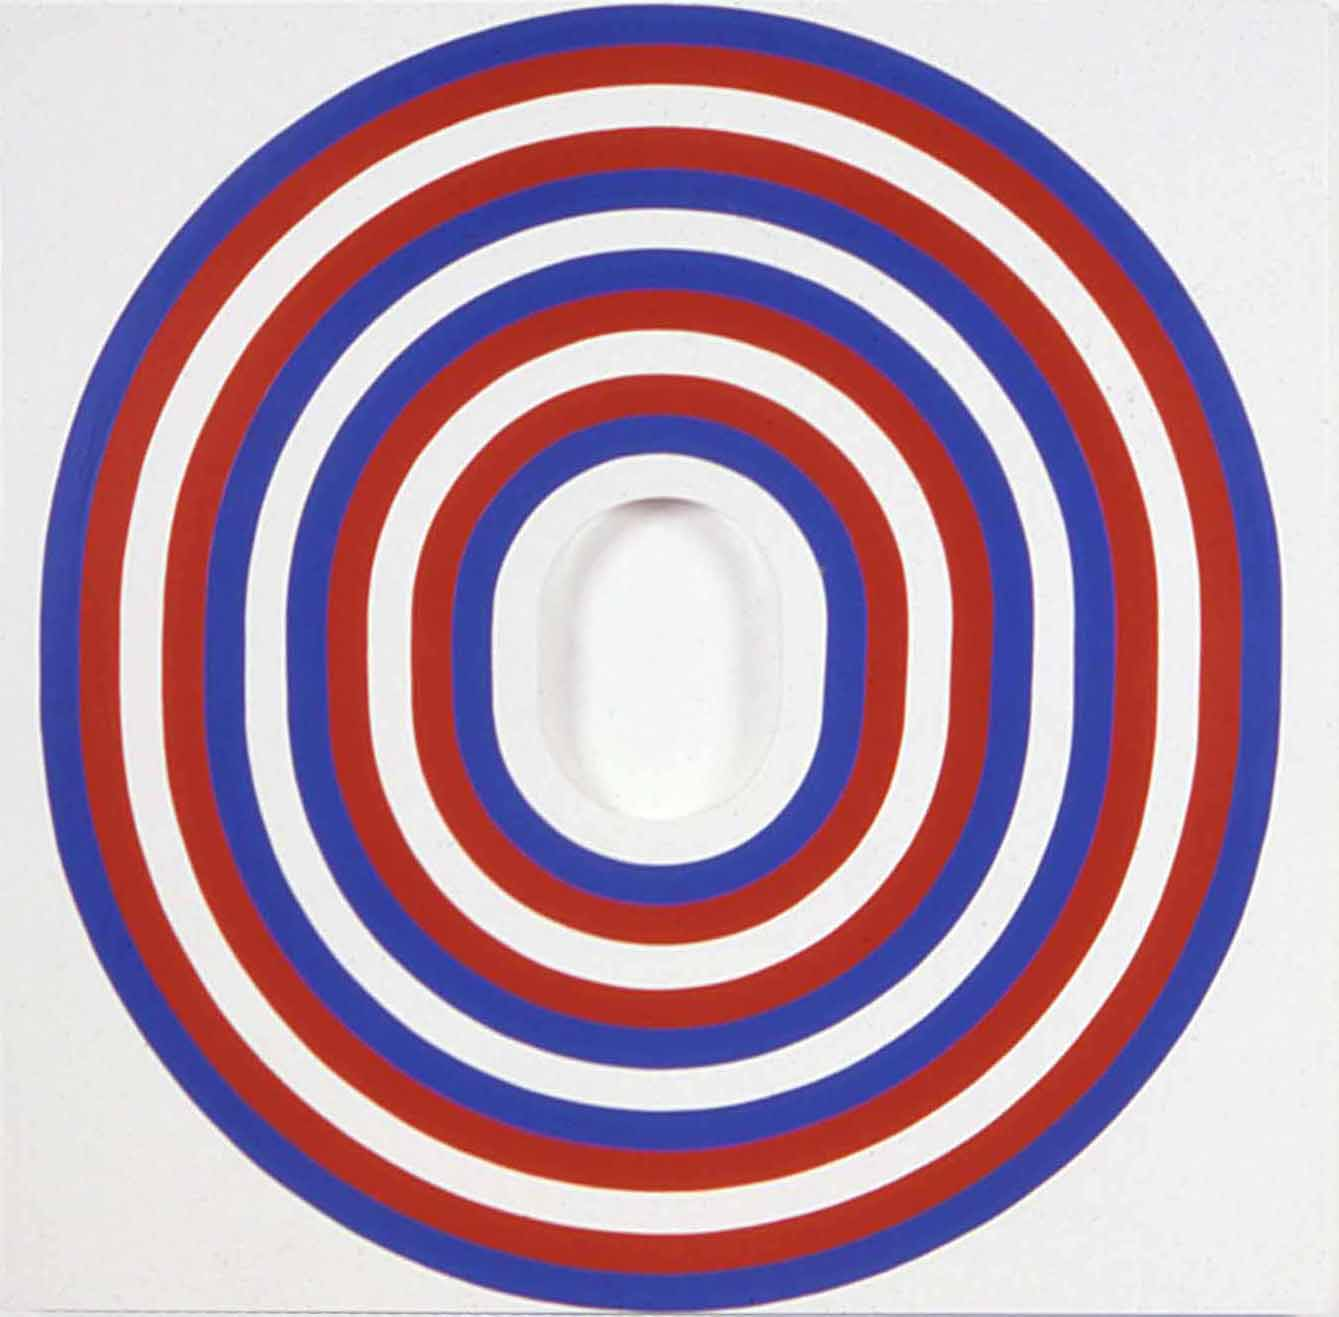 Jim Isermann, Untitled (hole painting) (0388), 1988 enamel paint on wood 122 x 122 x 5 cm - 48 x 48 x 2 inches